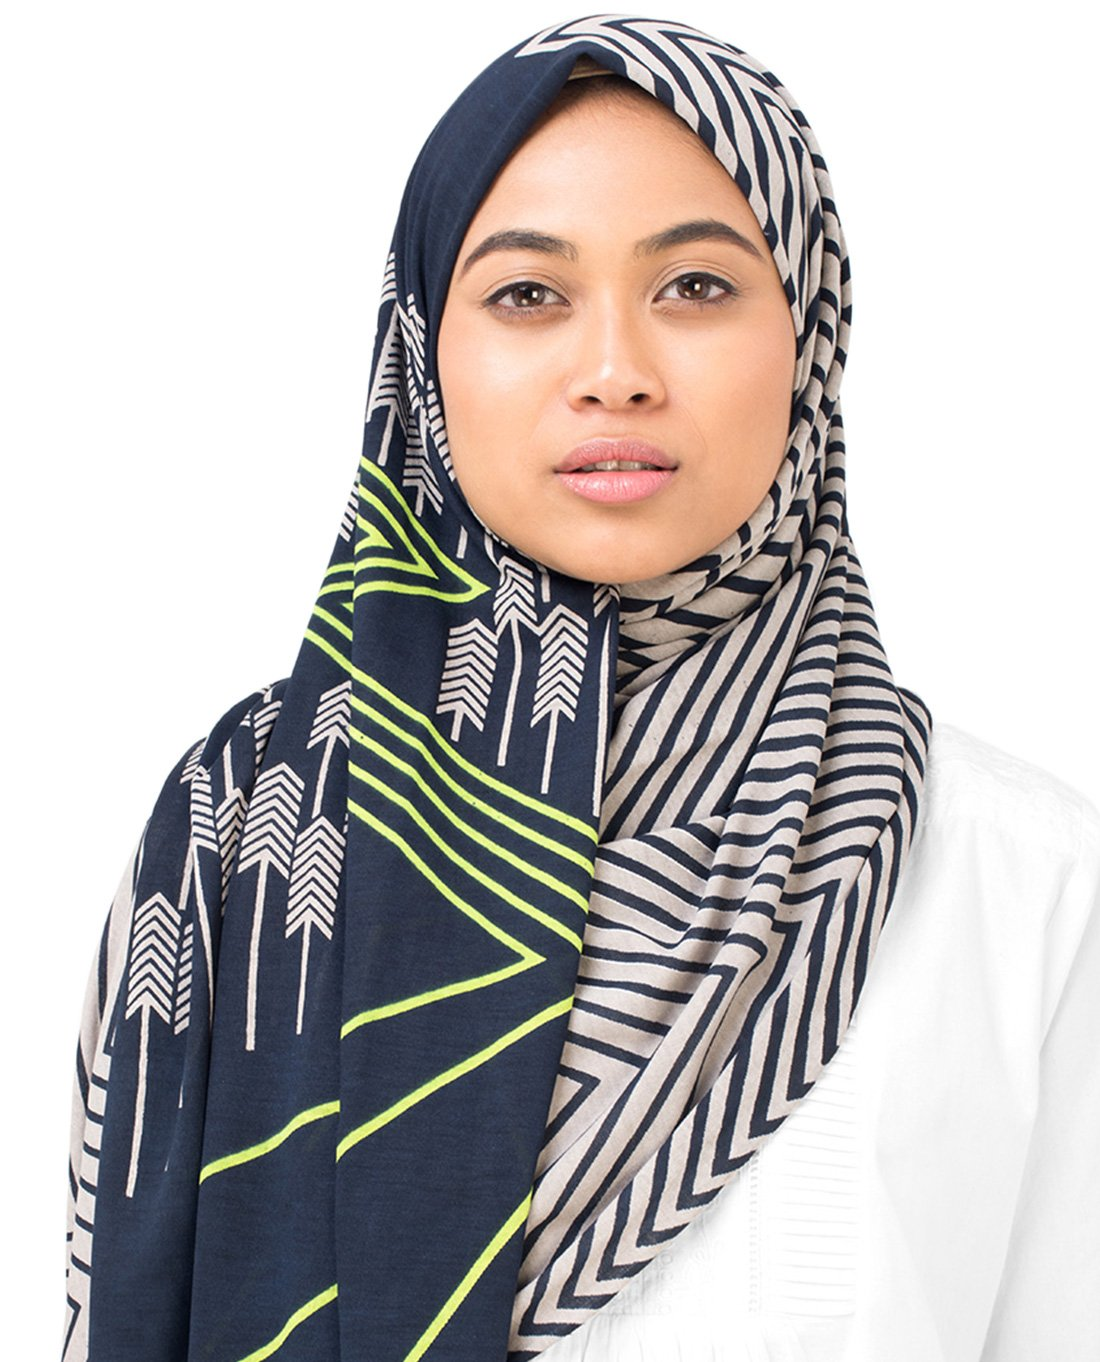 Silk Route New Wind Chime & Medieval Blue Ziz Zag Viscose Jersey Stole Scarf Ladies Wrap Hijab Regular Size